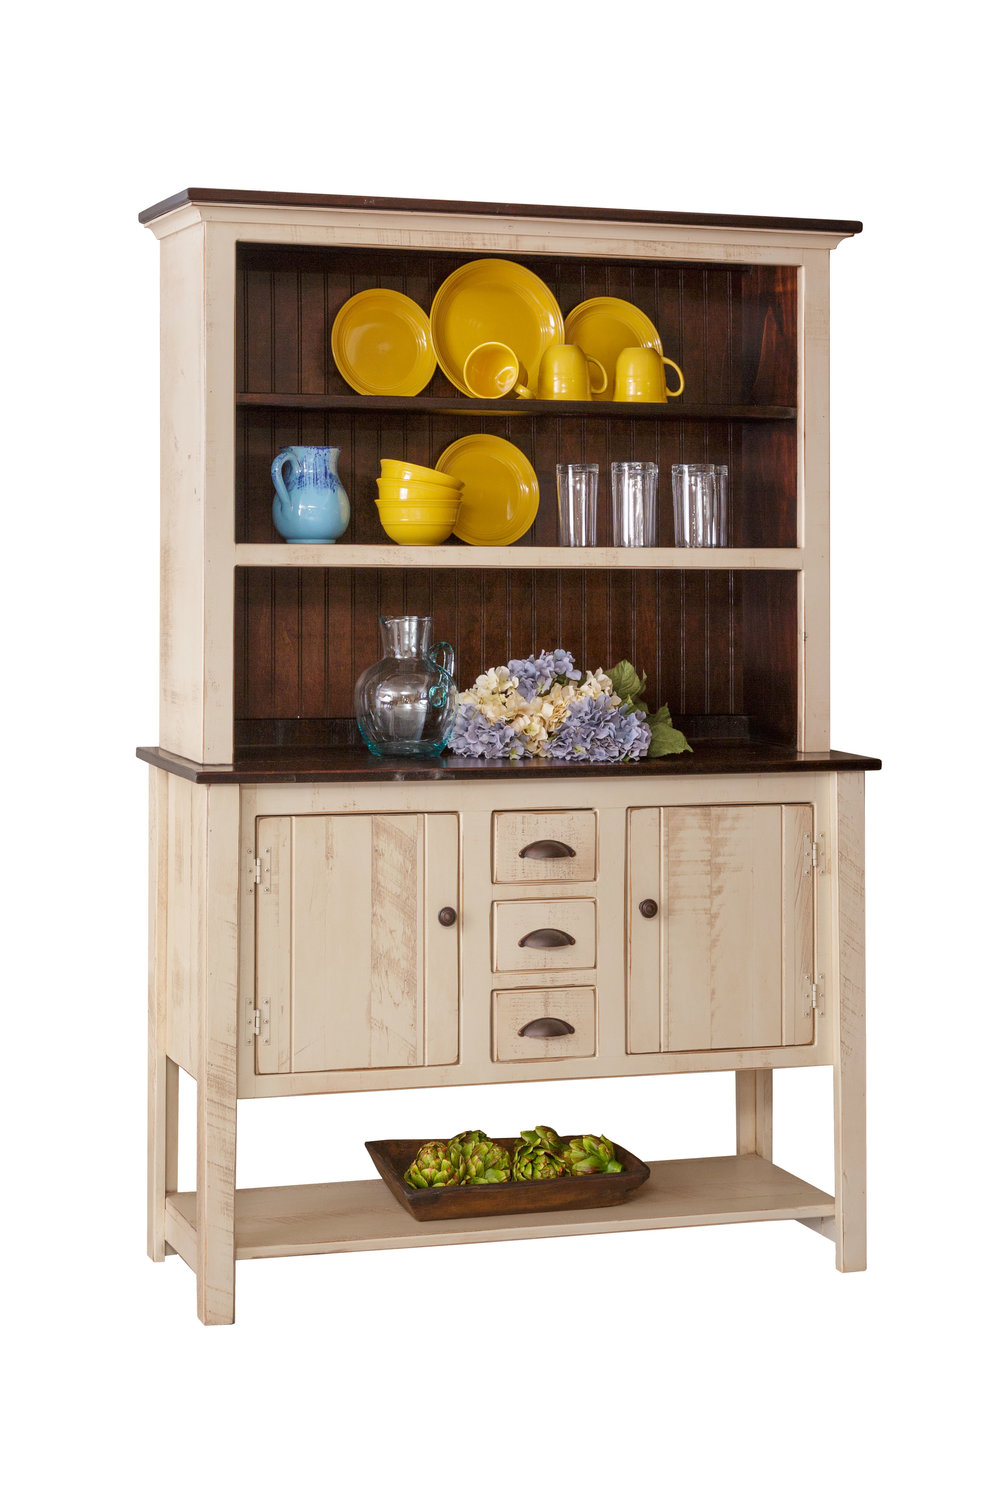 with image photos of sideboard gallery rustic farmhouse rocket and uncle hutch